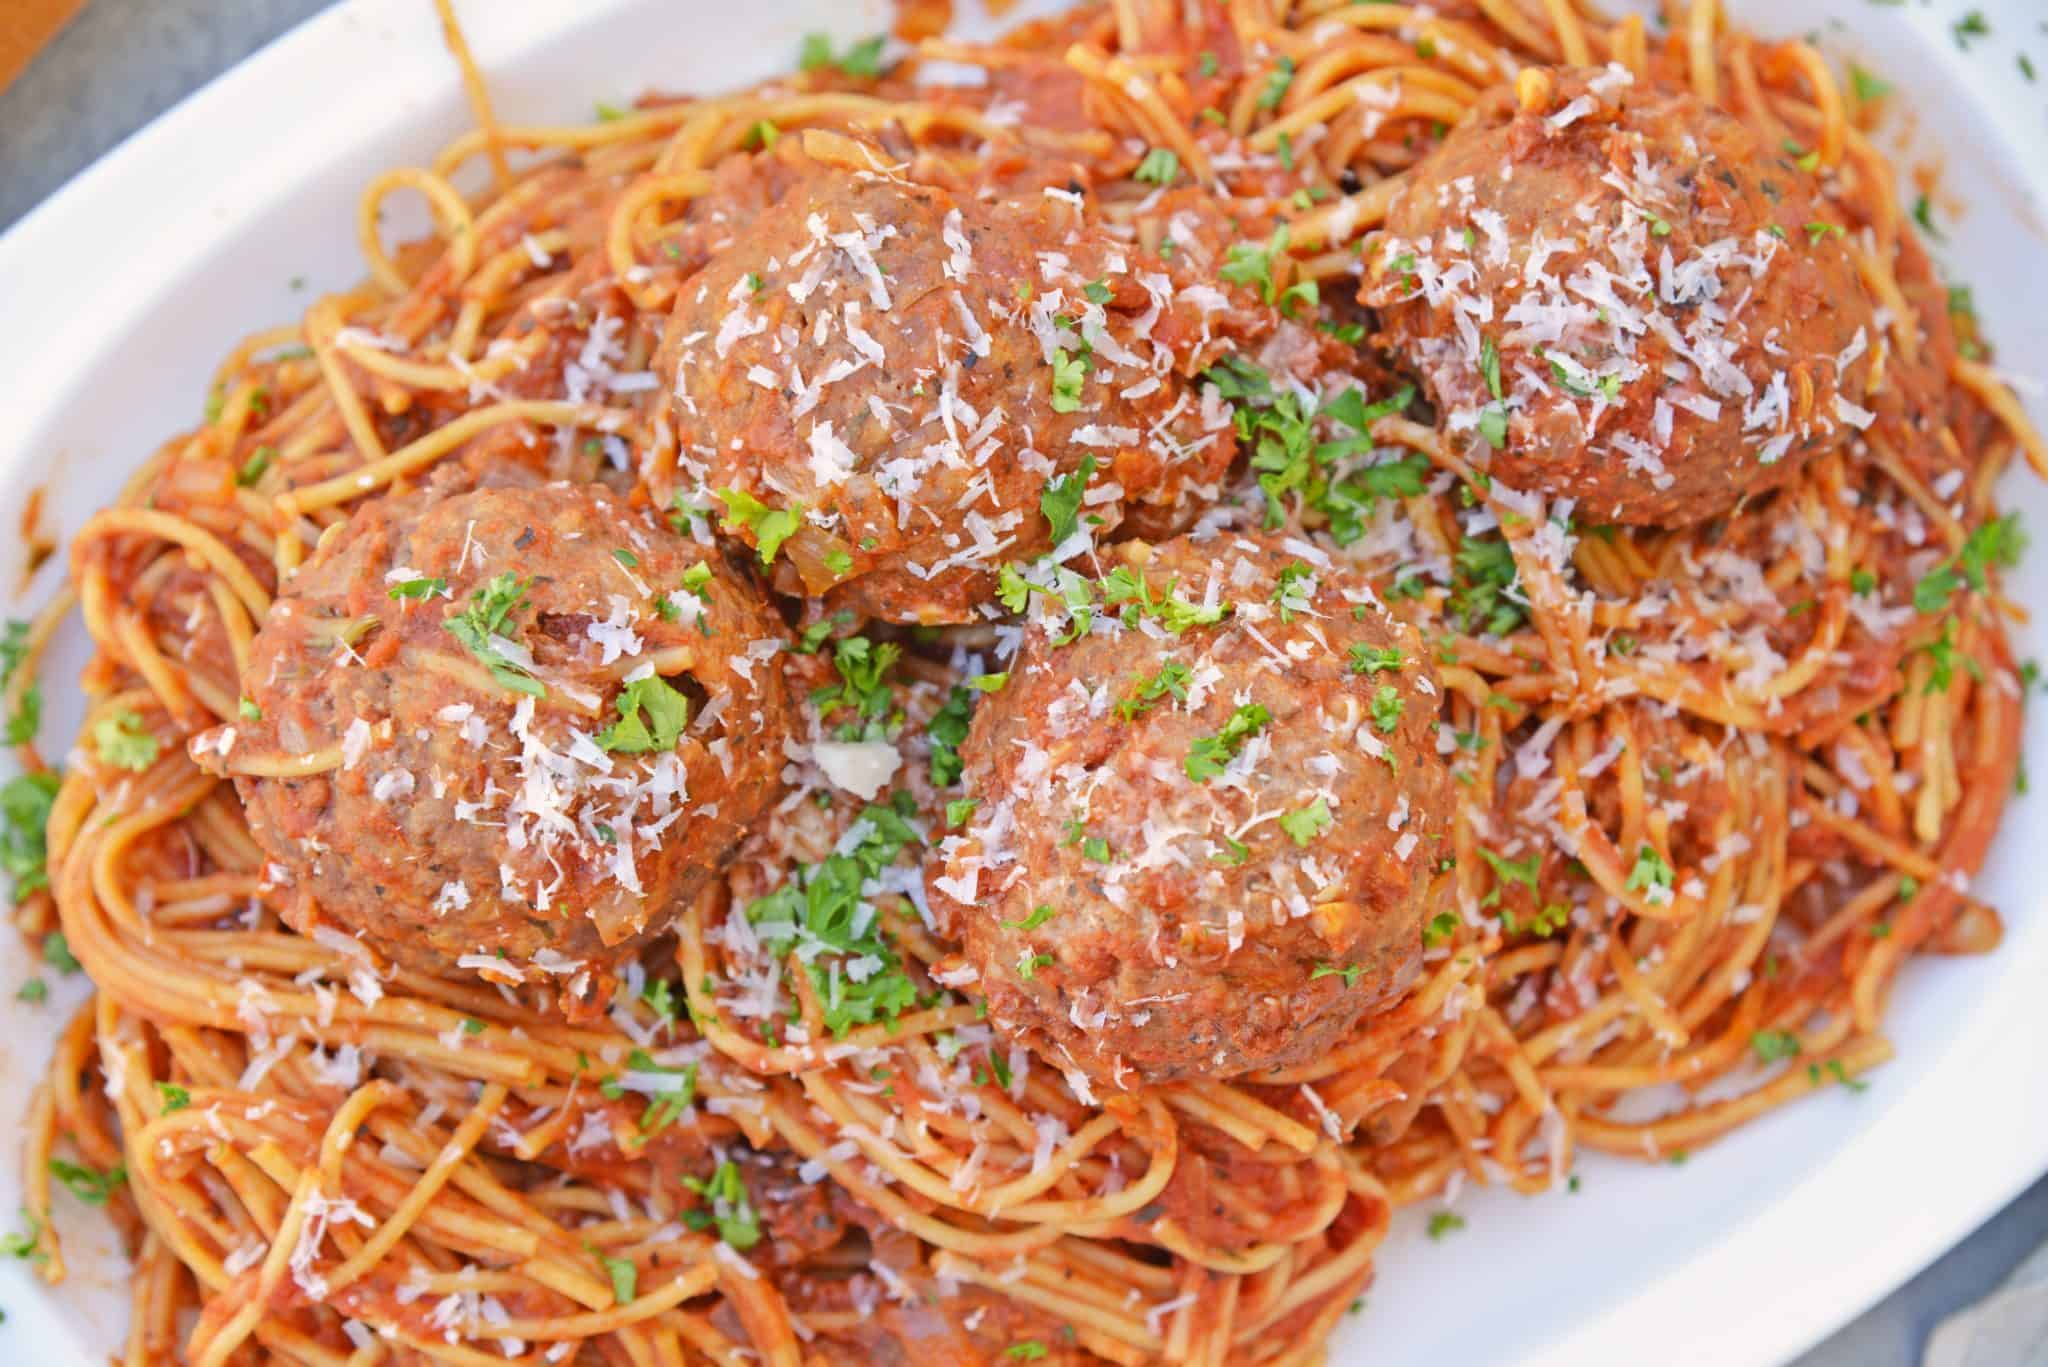 Spaghetti and meatballs on a white dish - Christmas main dishes